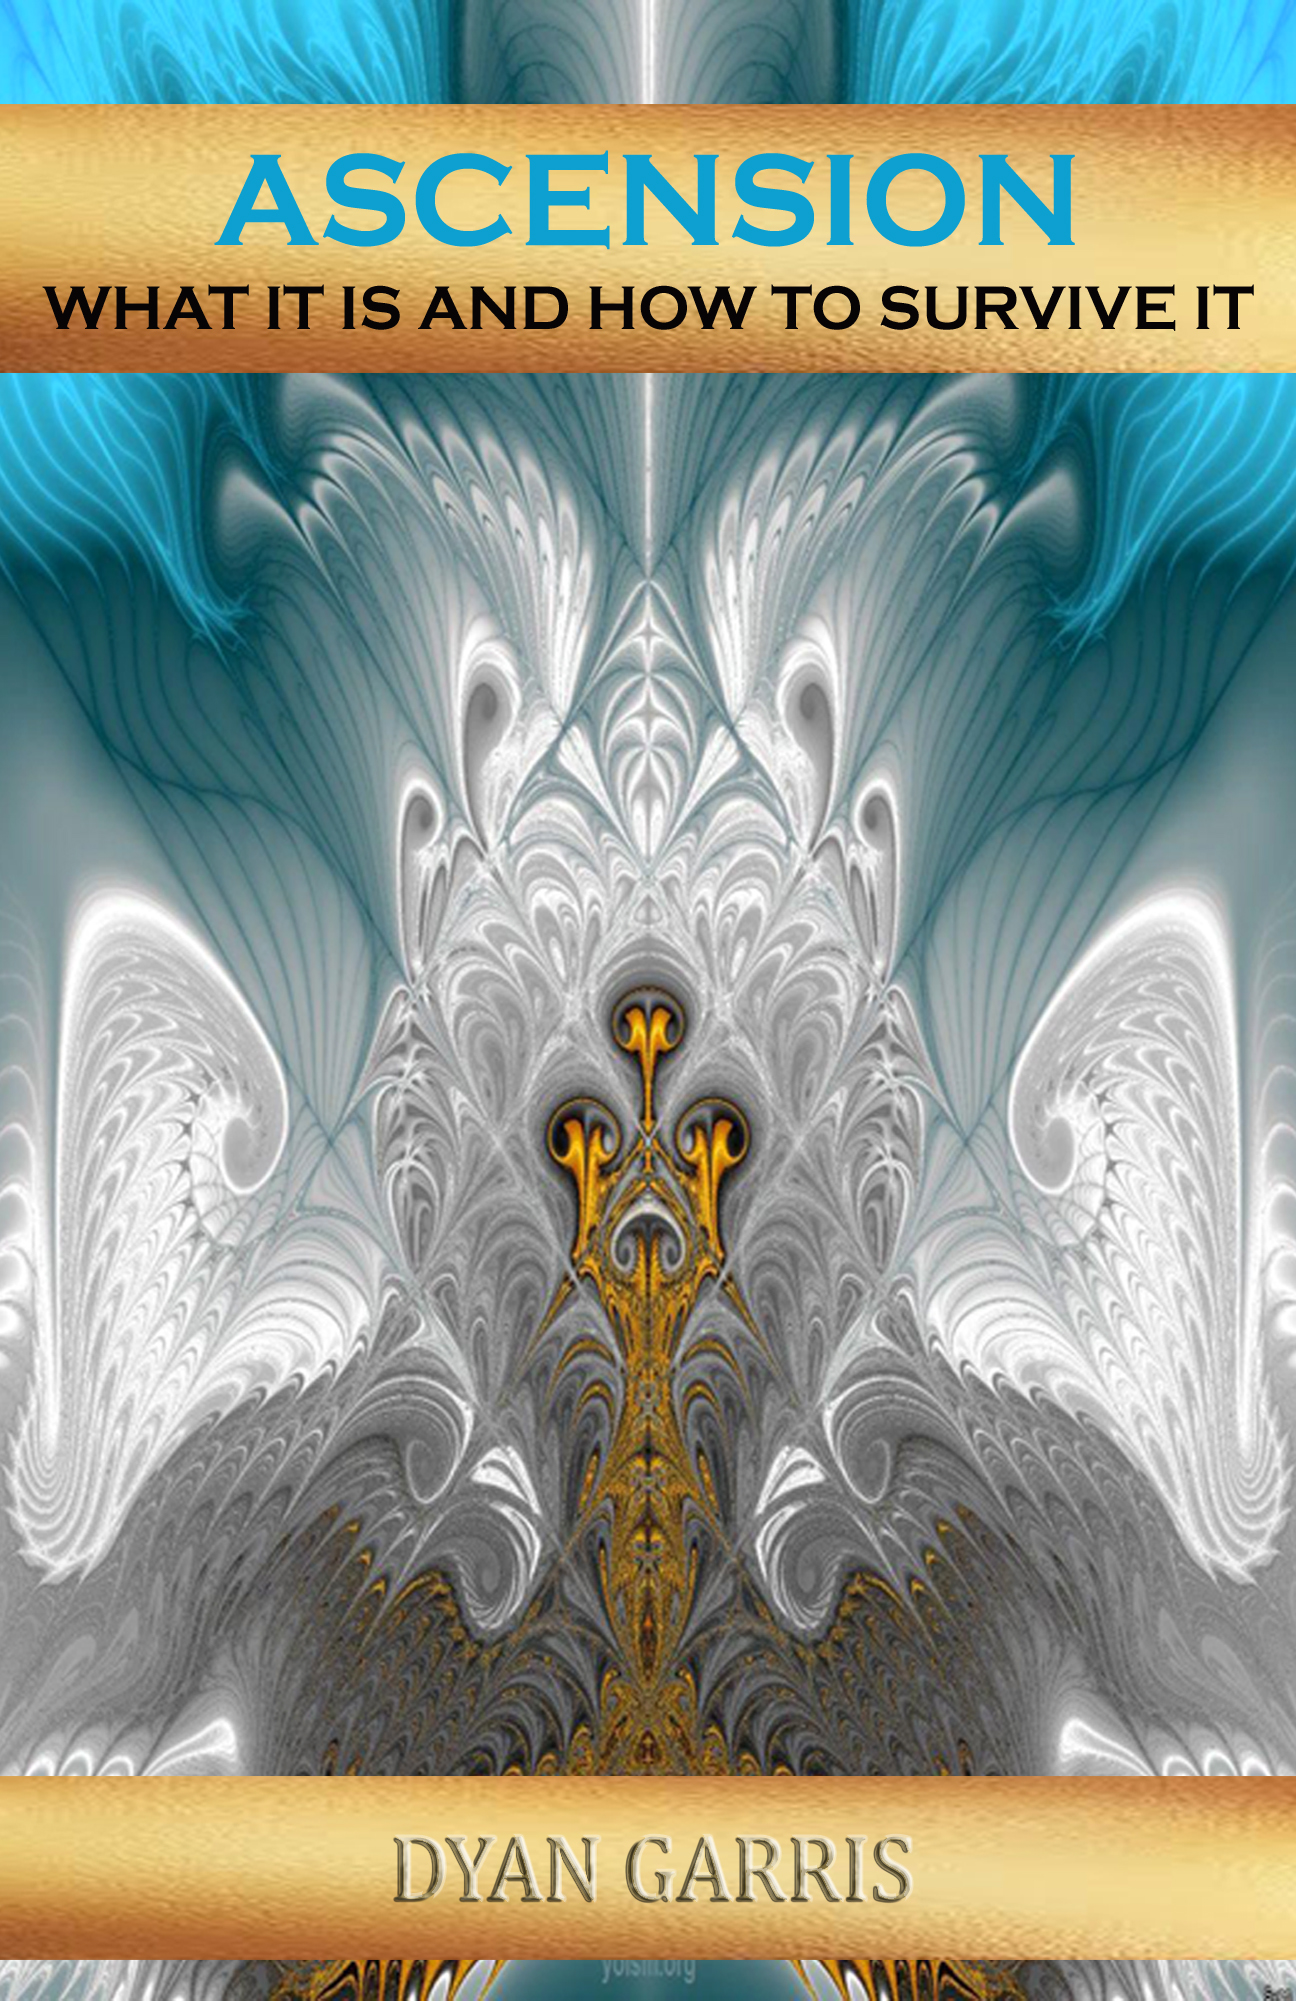 2_ascension ebook cover copy